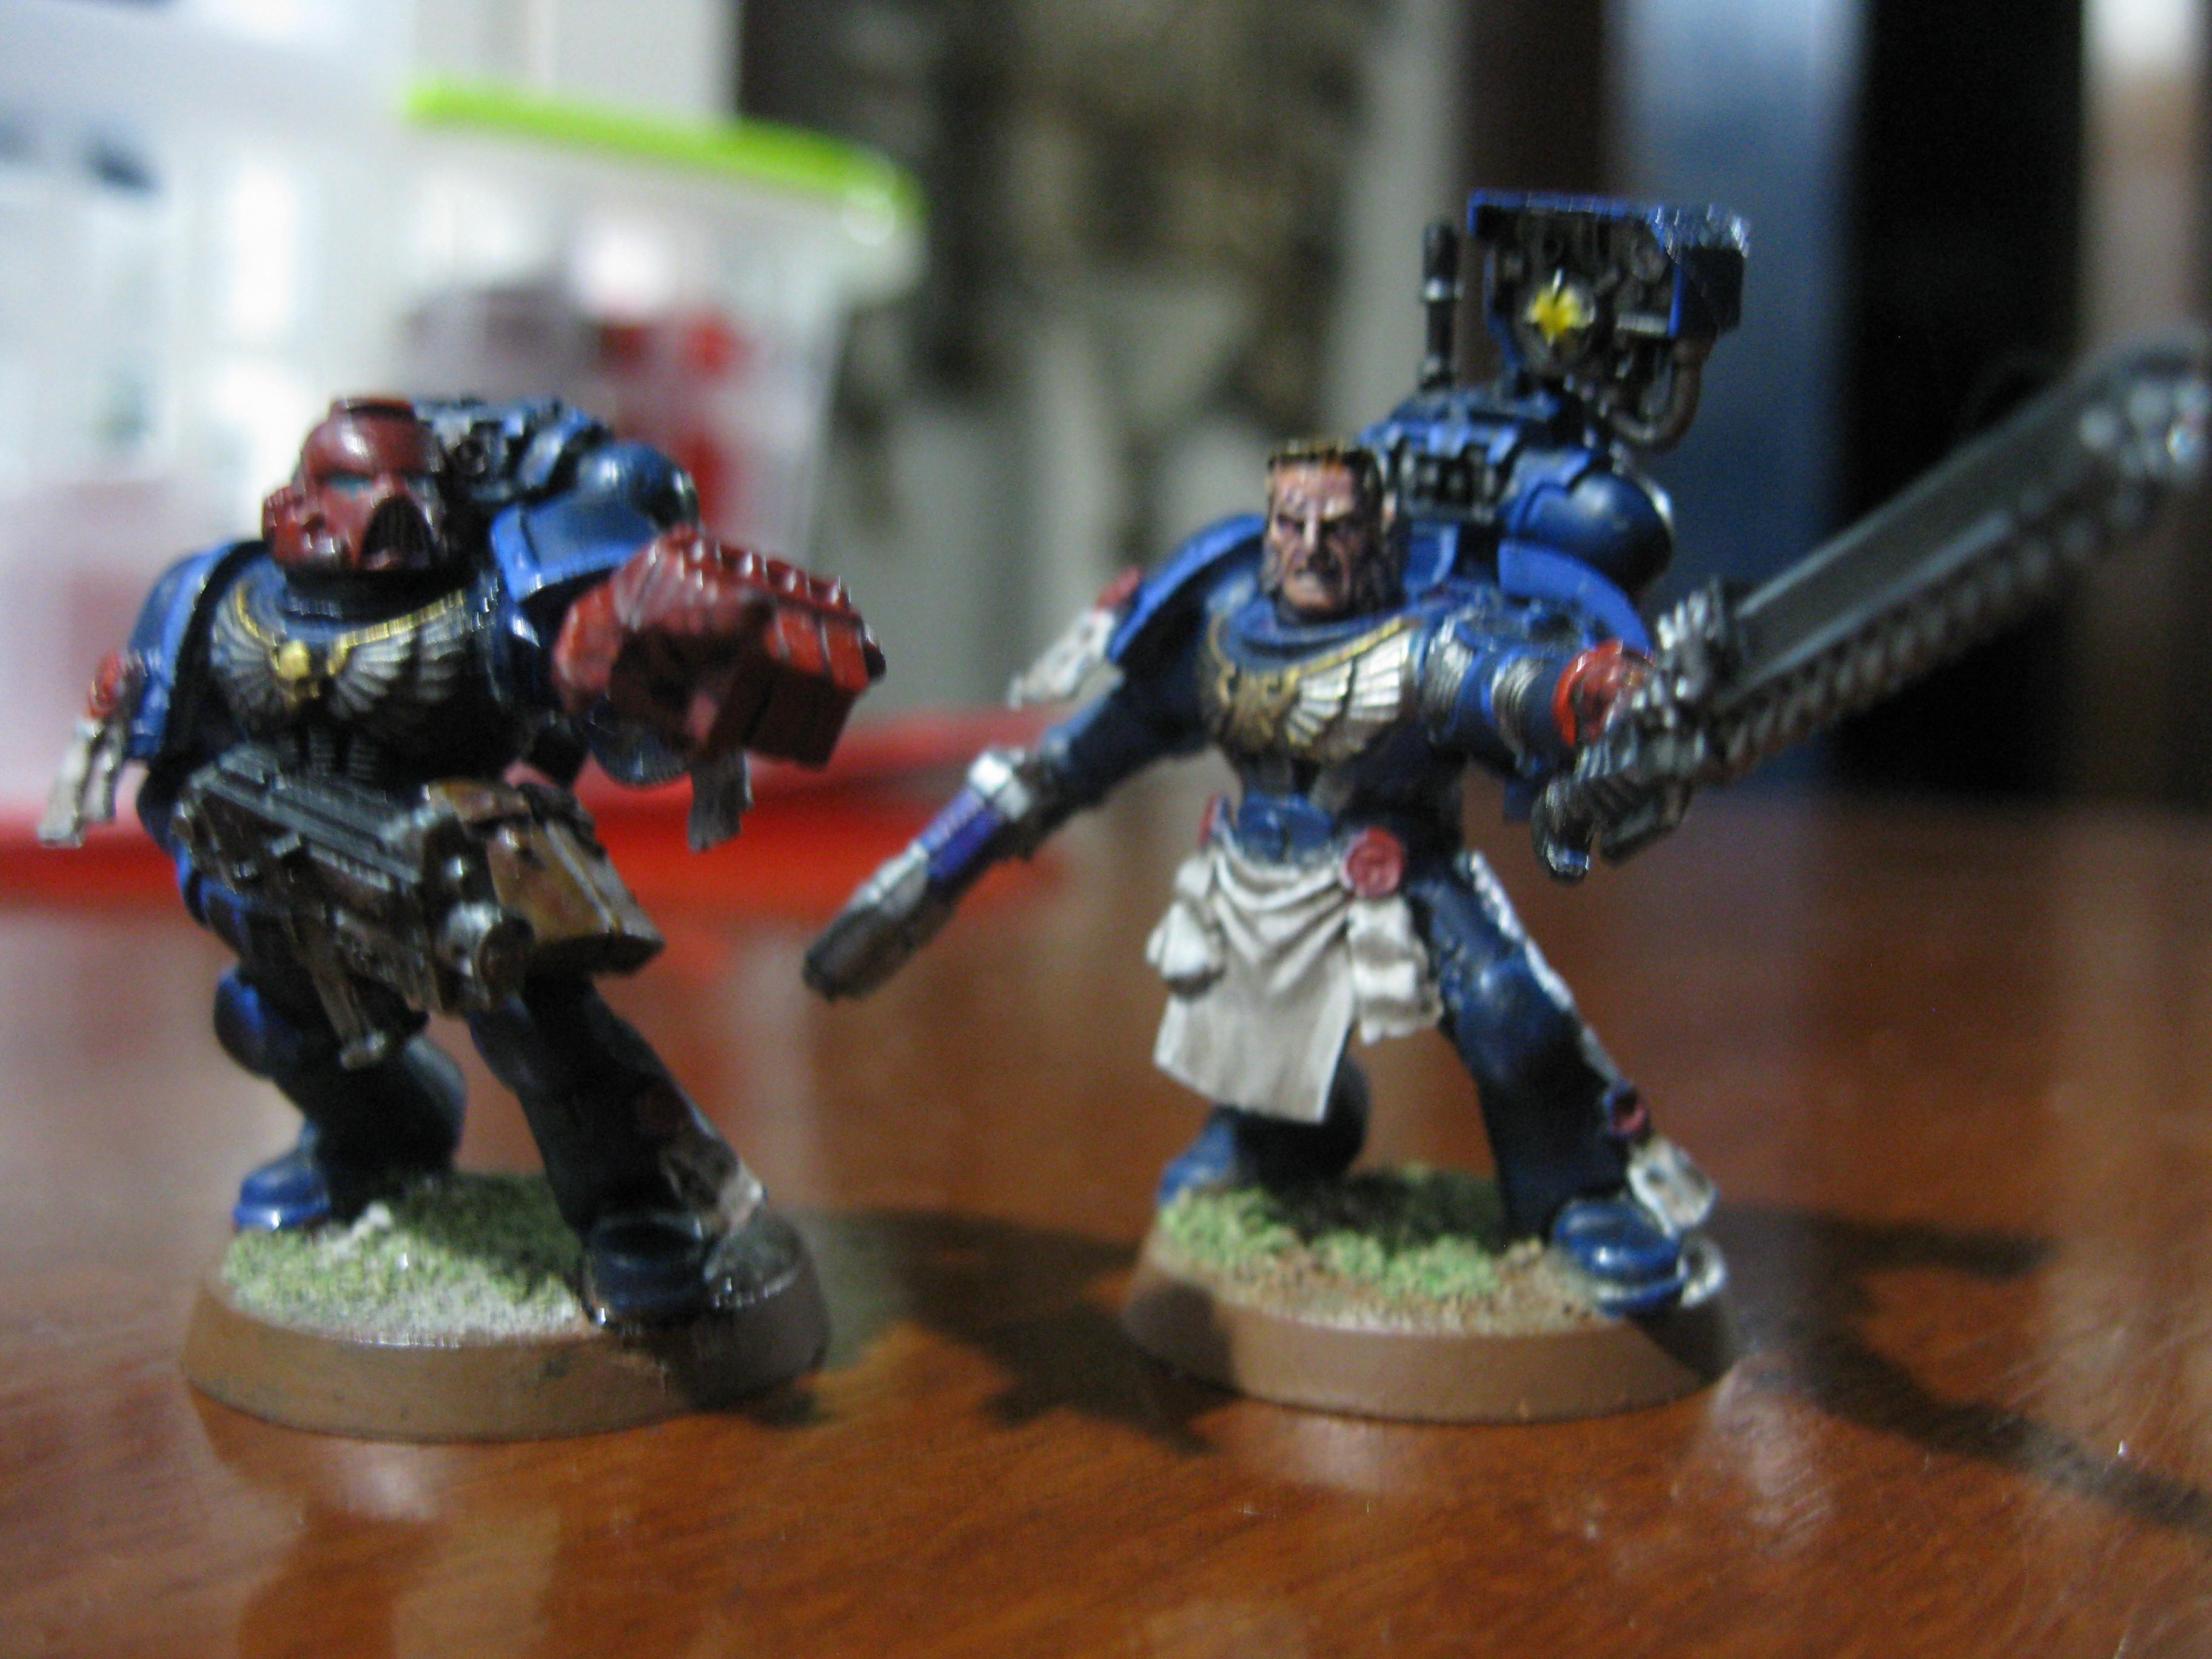 Close-up on the sergeants